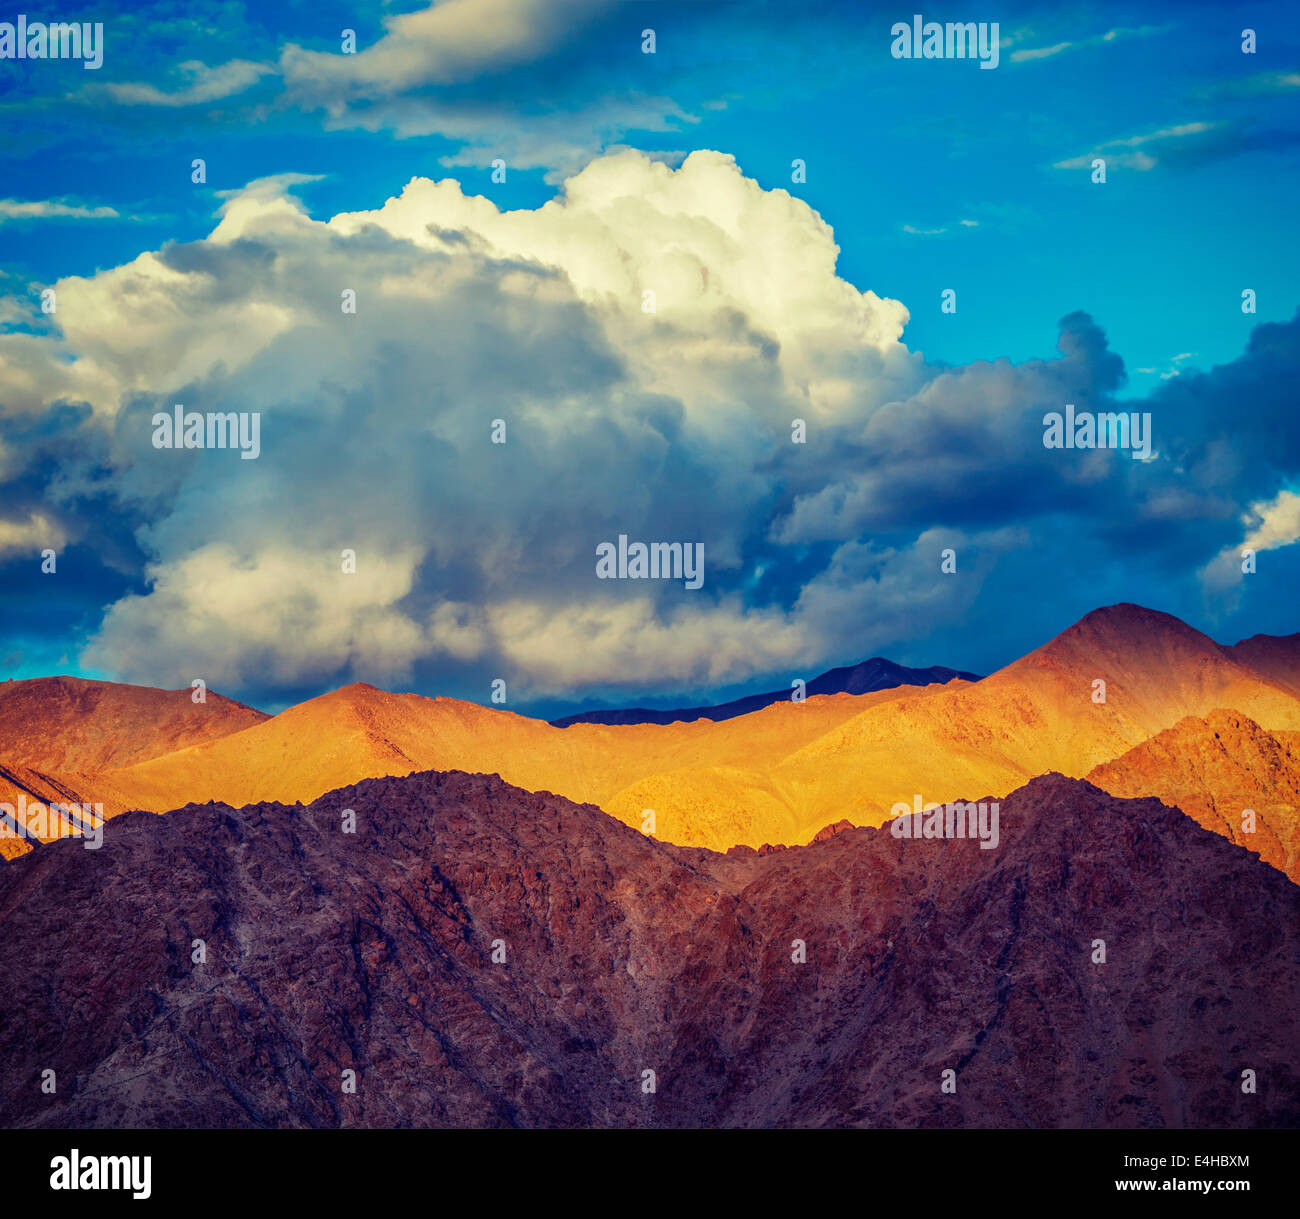 Vintage retro effect filtered hipster style travel image of Himalayas mountains on sunset. Ladakh, Jammu and Kashmir, - Stock Image